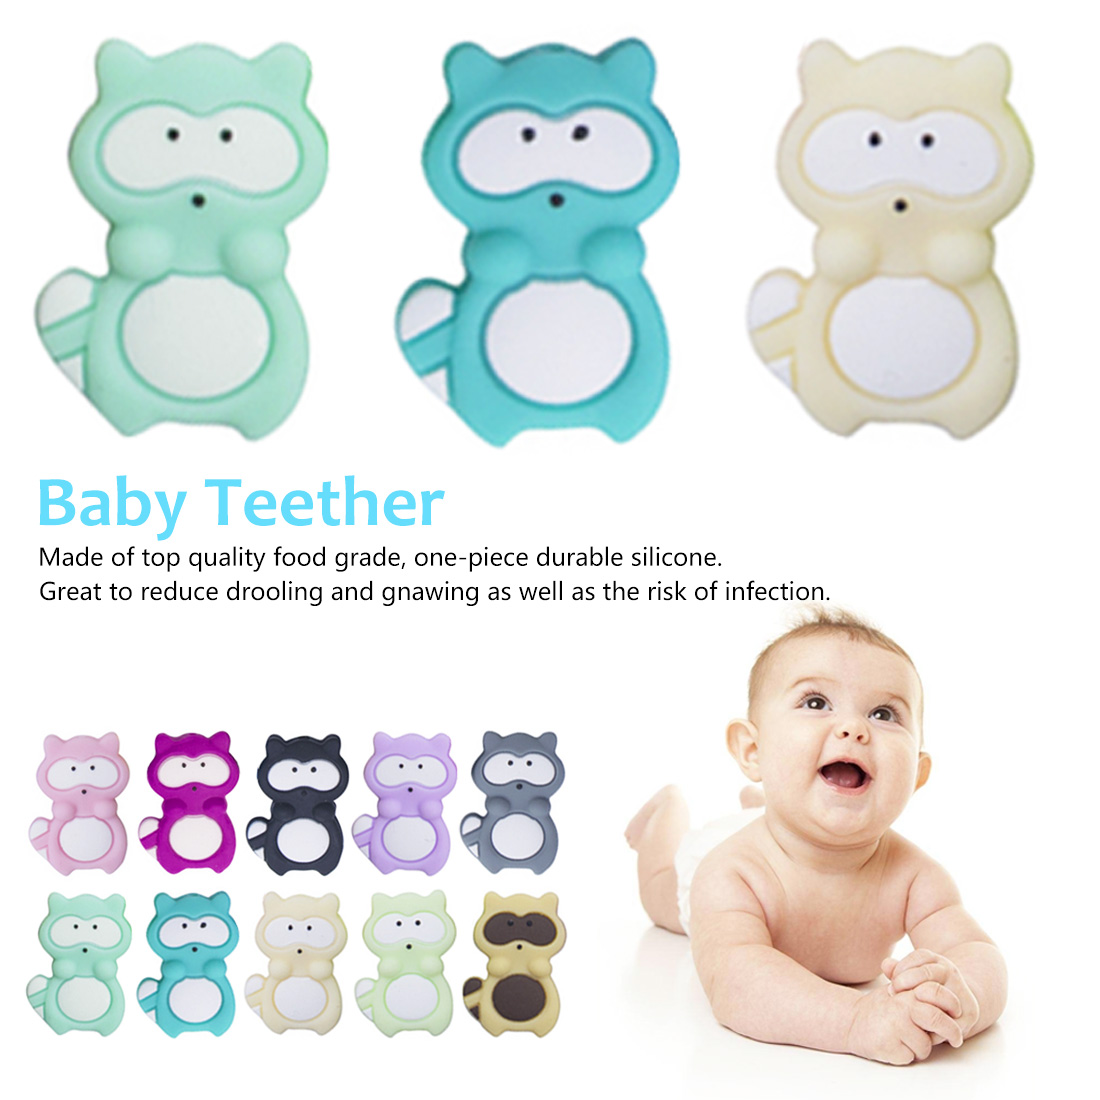 3pcs Silicone Raccoon Beads Animal Pacifier Clip Accessories Baby Teether BPA Free DIY Loose Beads For Teething Necklace